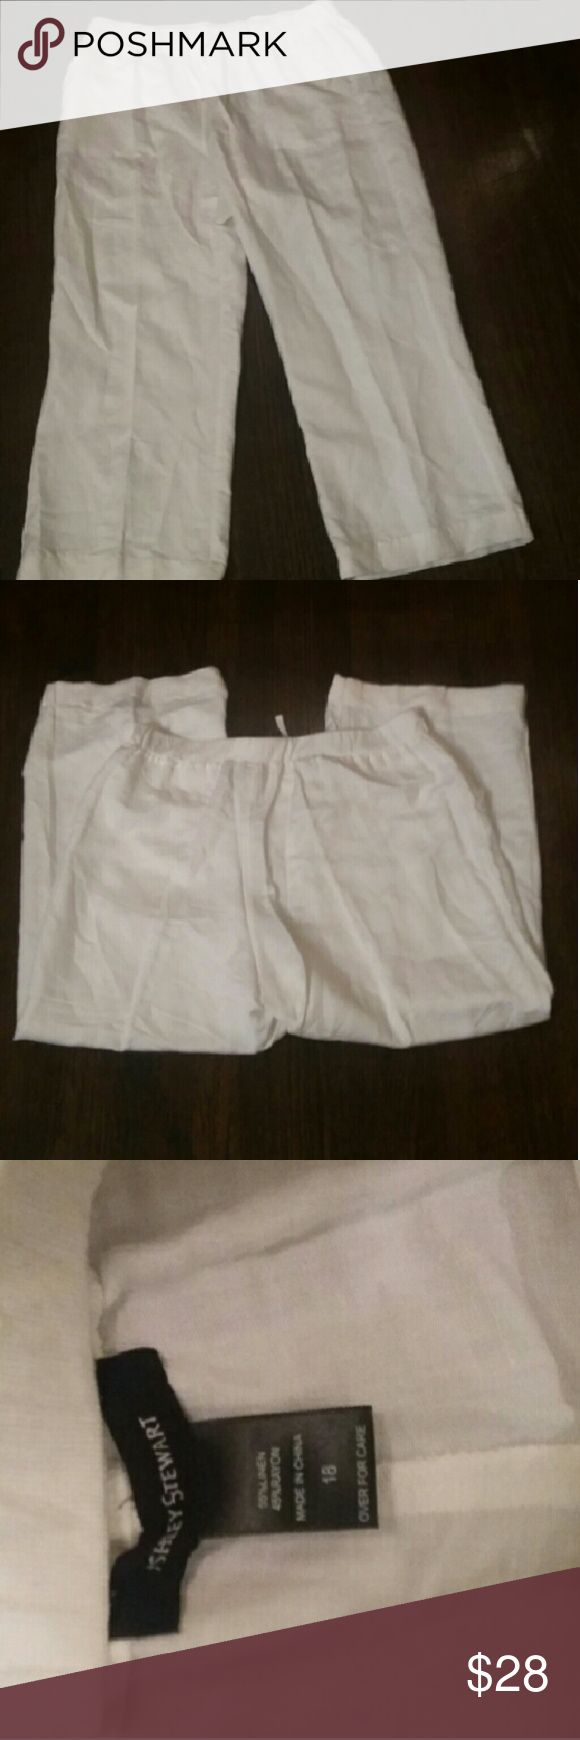 Ashley Stewart linen pants Like Ashley Stewart linen pants. They are in almost new condition. Ashley Stewart Pants Trousers